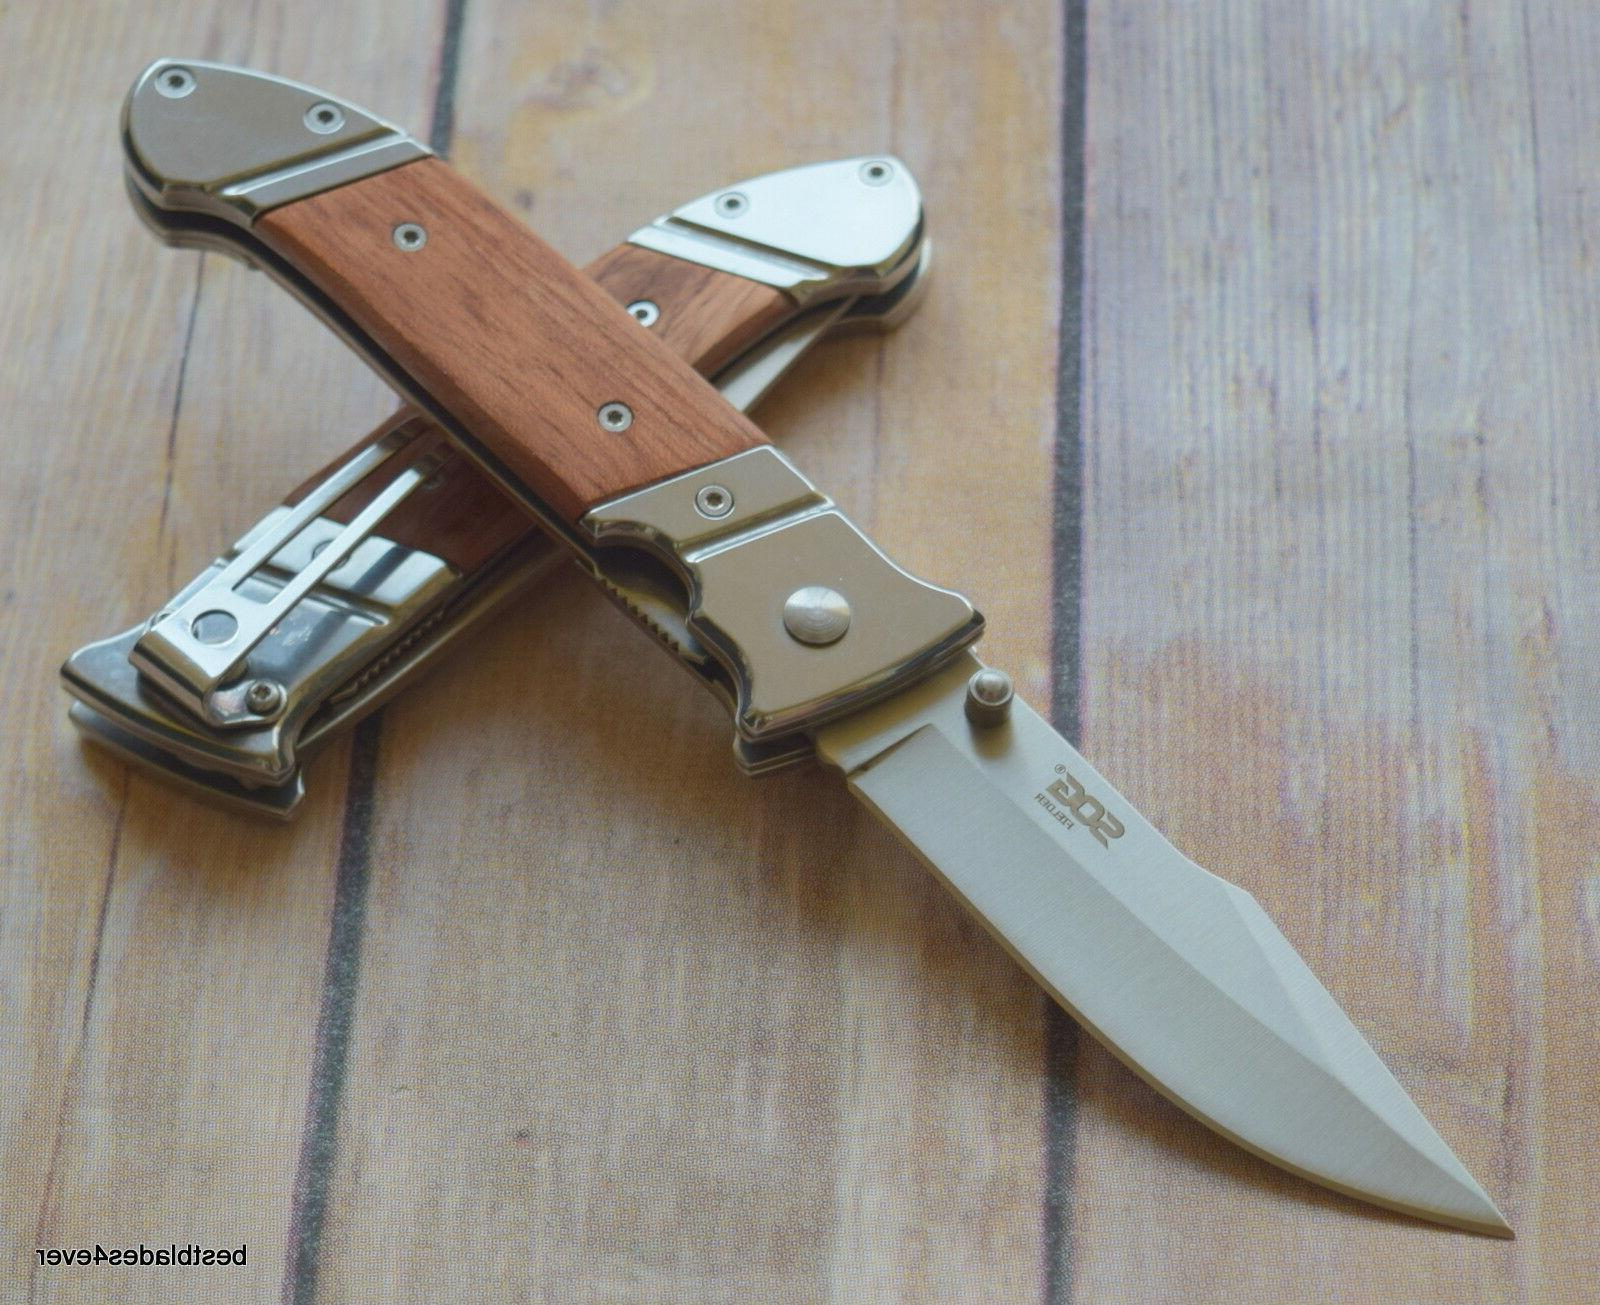 SOG LINERLOCK KNIFE WITH - 7.8